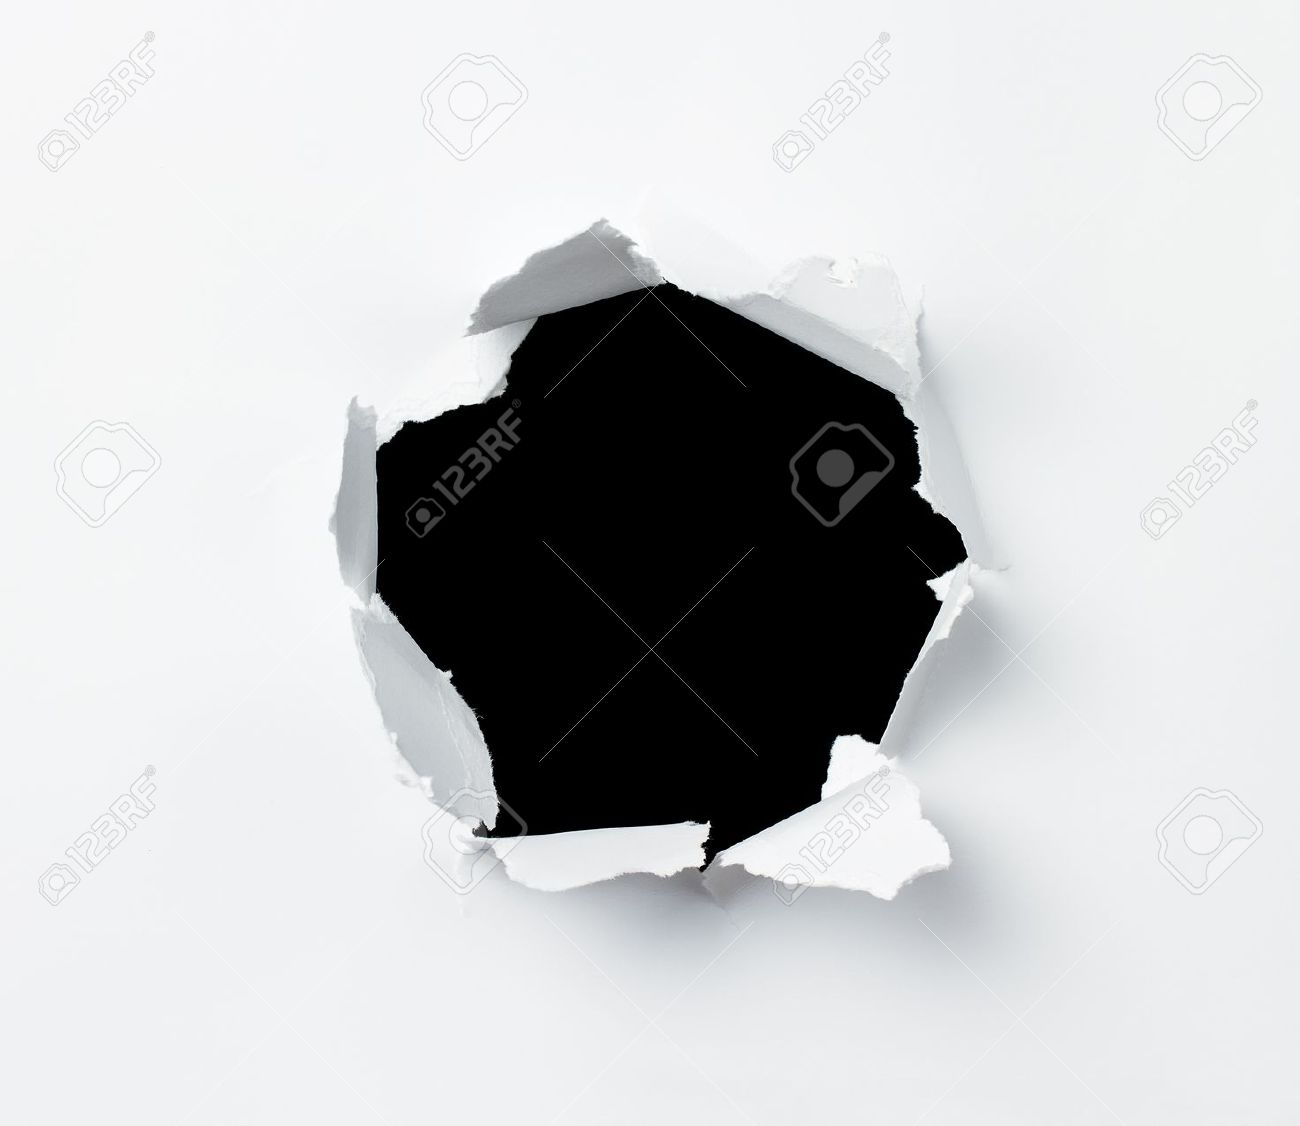 Hole punched in the paper sheet Stock Photo - 12863514